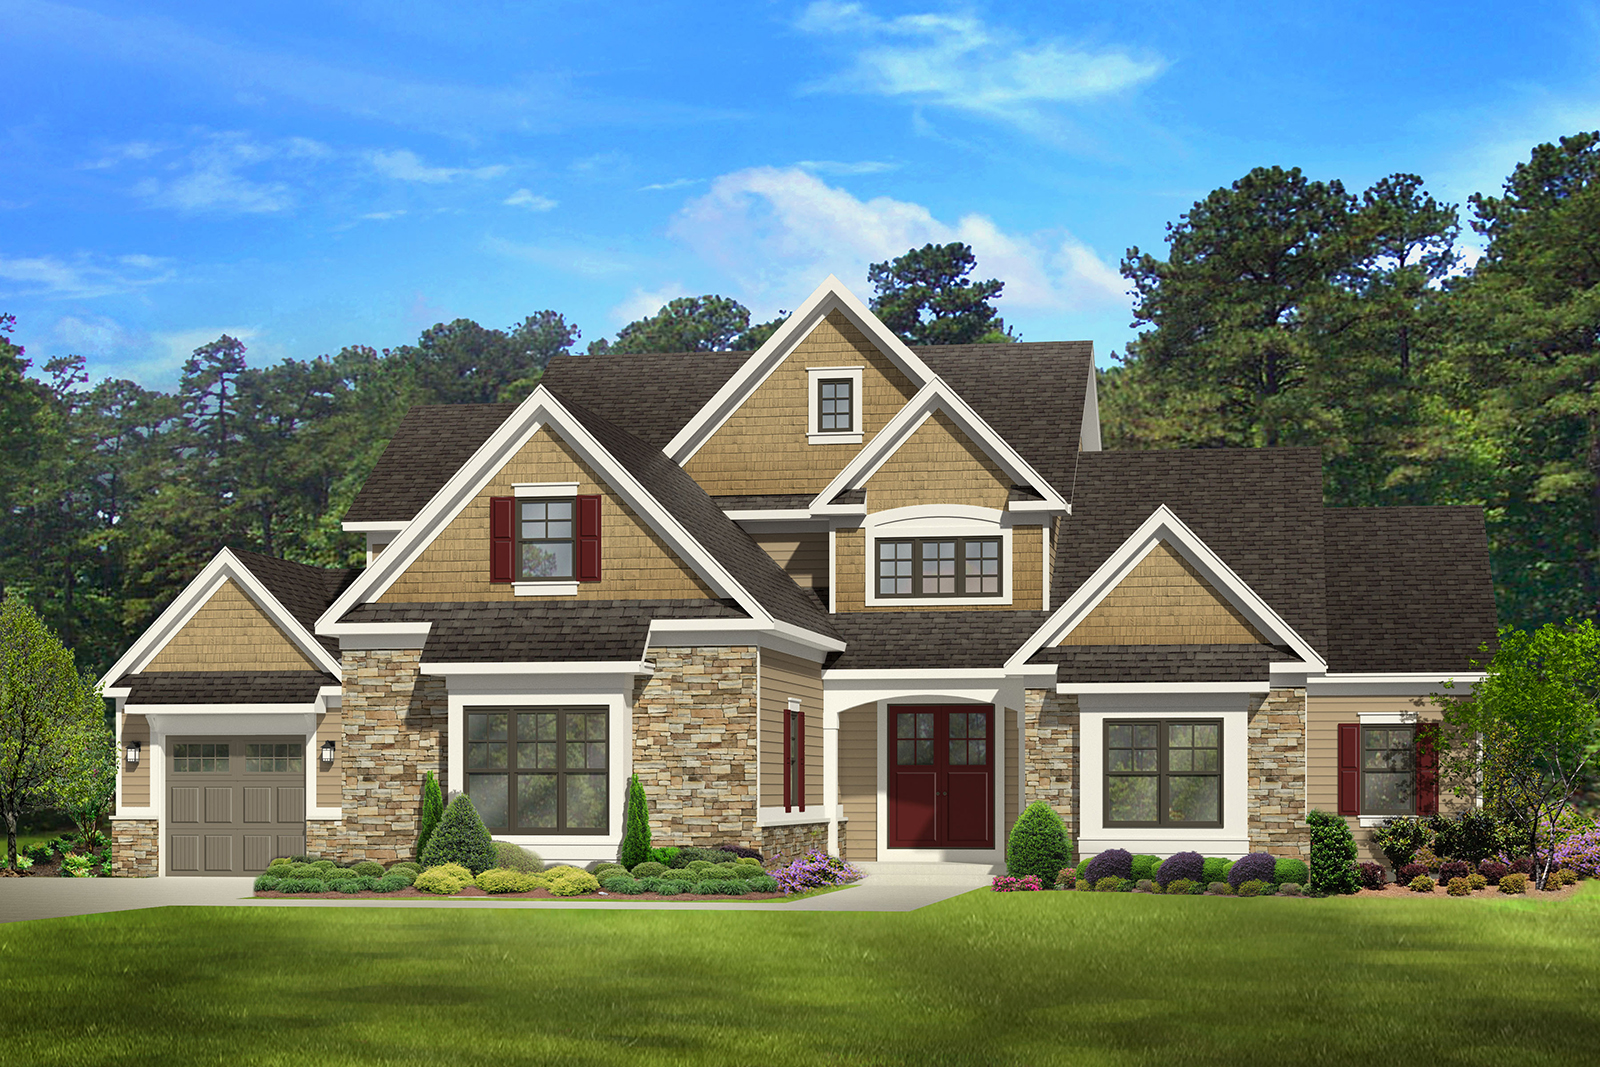 How to downplay a big garage break it up builder for Four gables house plan with garage